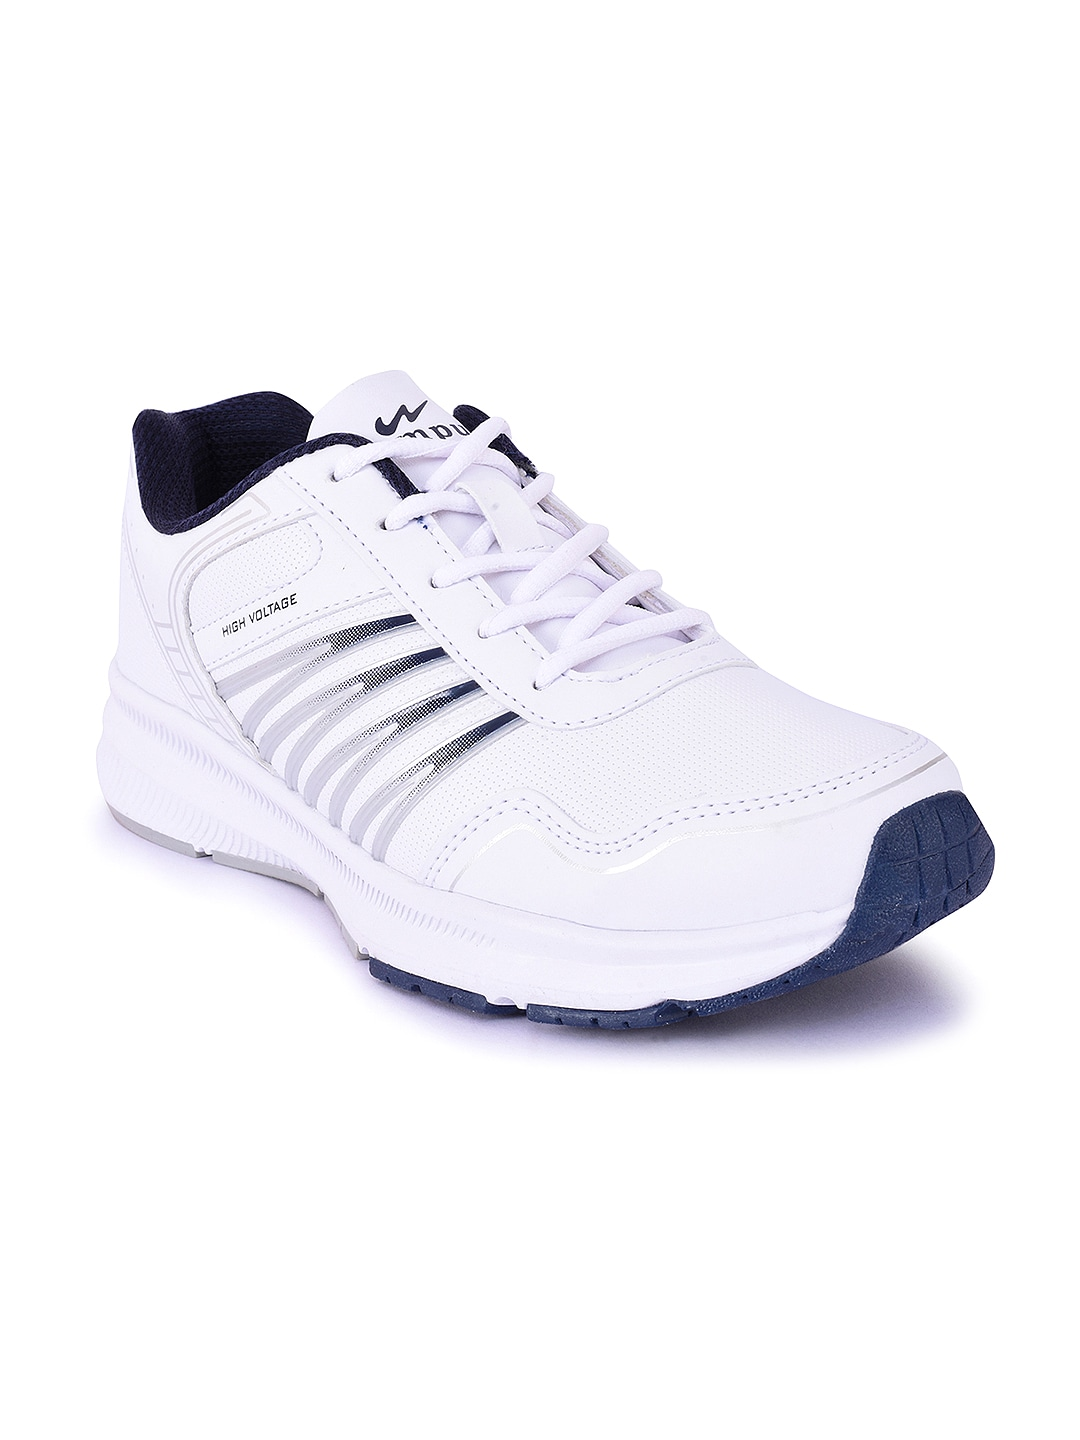 0f0232da3ddb Campus Shoes - Buy Campus Shoes Online in India